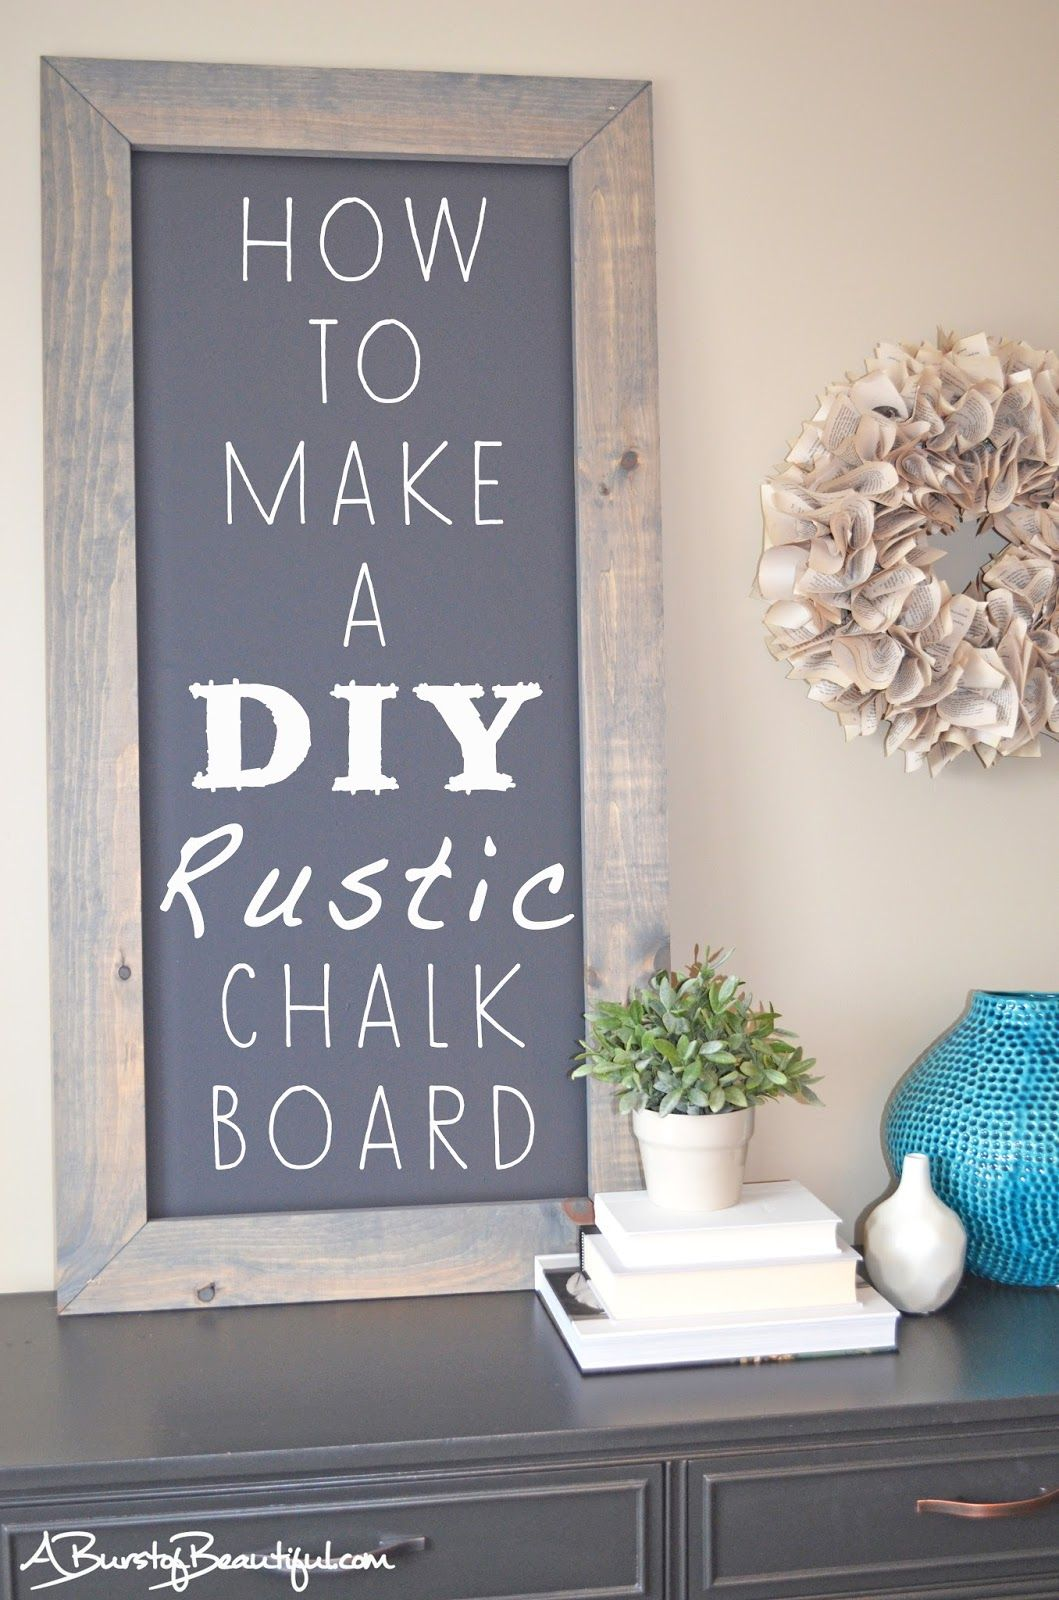 Diy Rustic Chalkboard Rustic Diy Rustic Chalkboard Diy Home Decor Projects